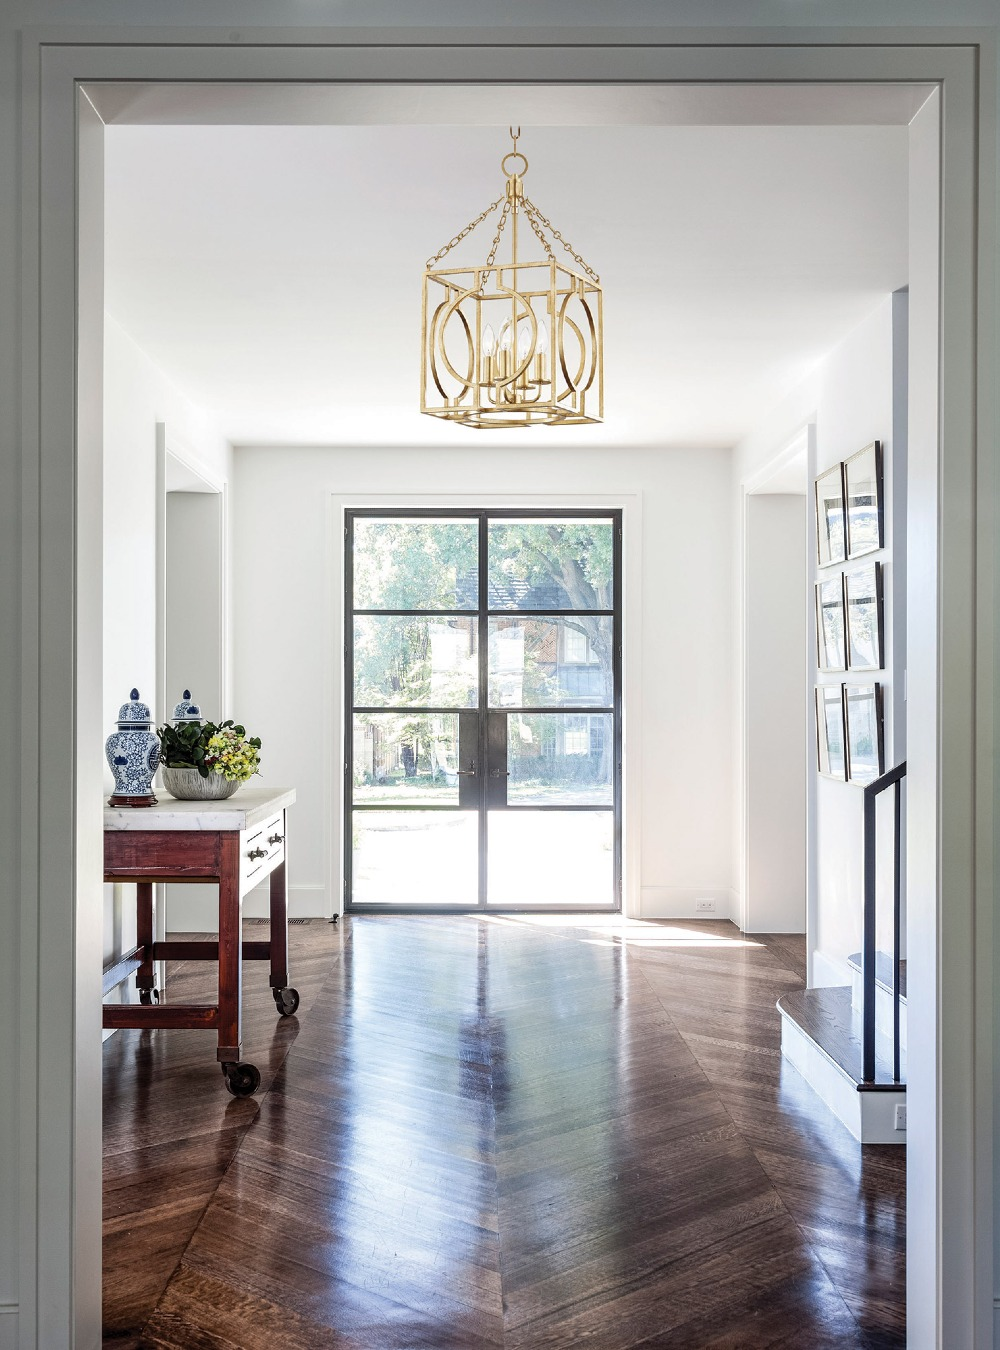 entryway lighting ideas 22 Outrageously Stunning Entryway Lighting Ideas 22 Outrageously Stunning Entryway Lighting Ideas 1 17